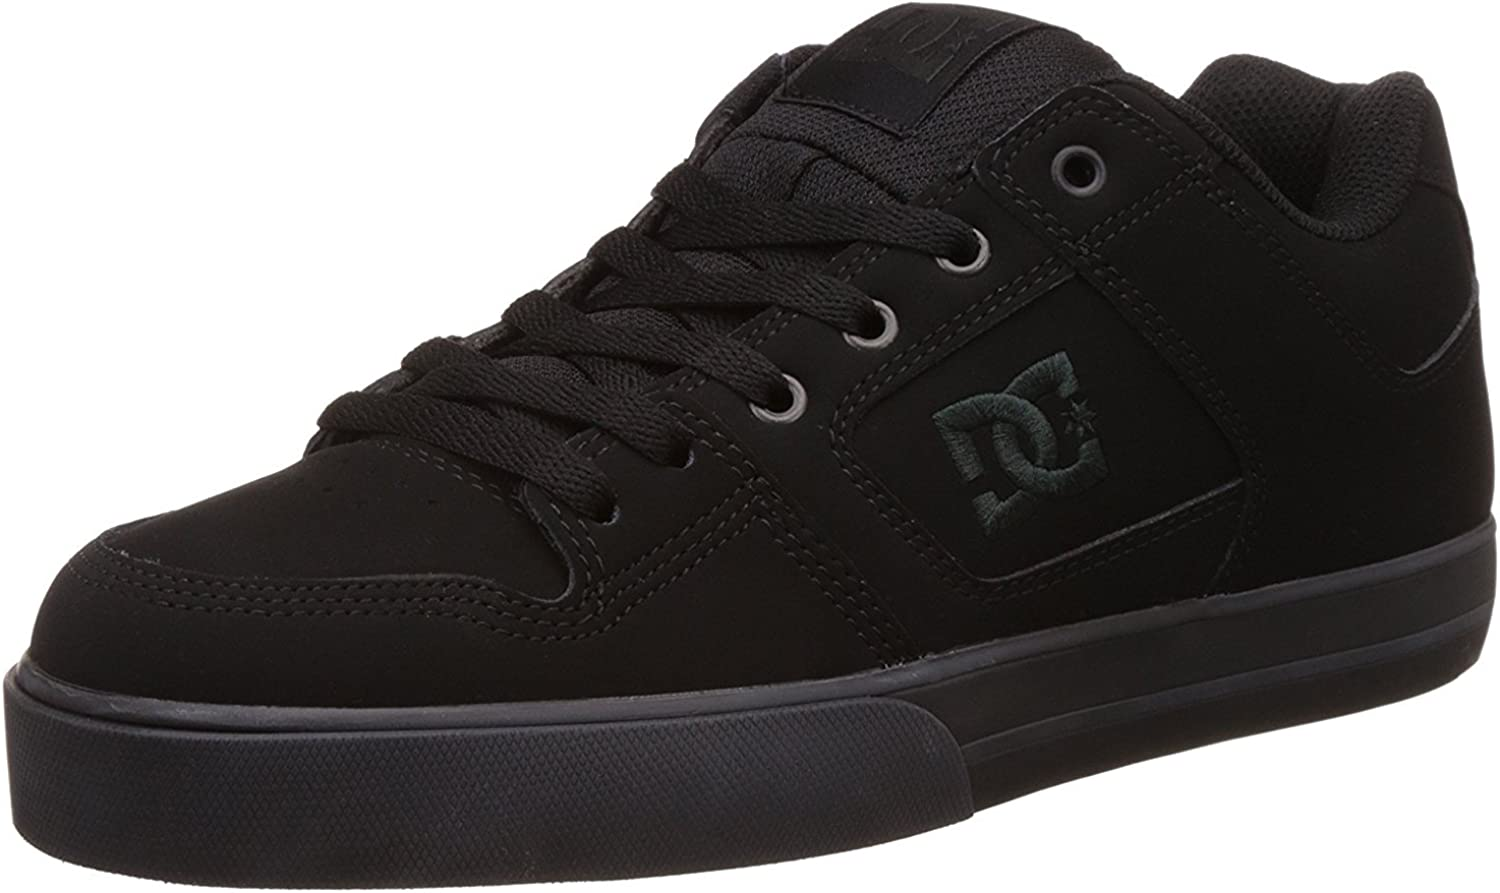 DC Mens Pure Leather Low Top Lace Up Skateboarding Shoes